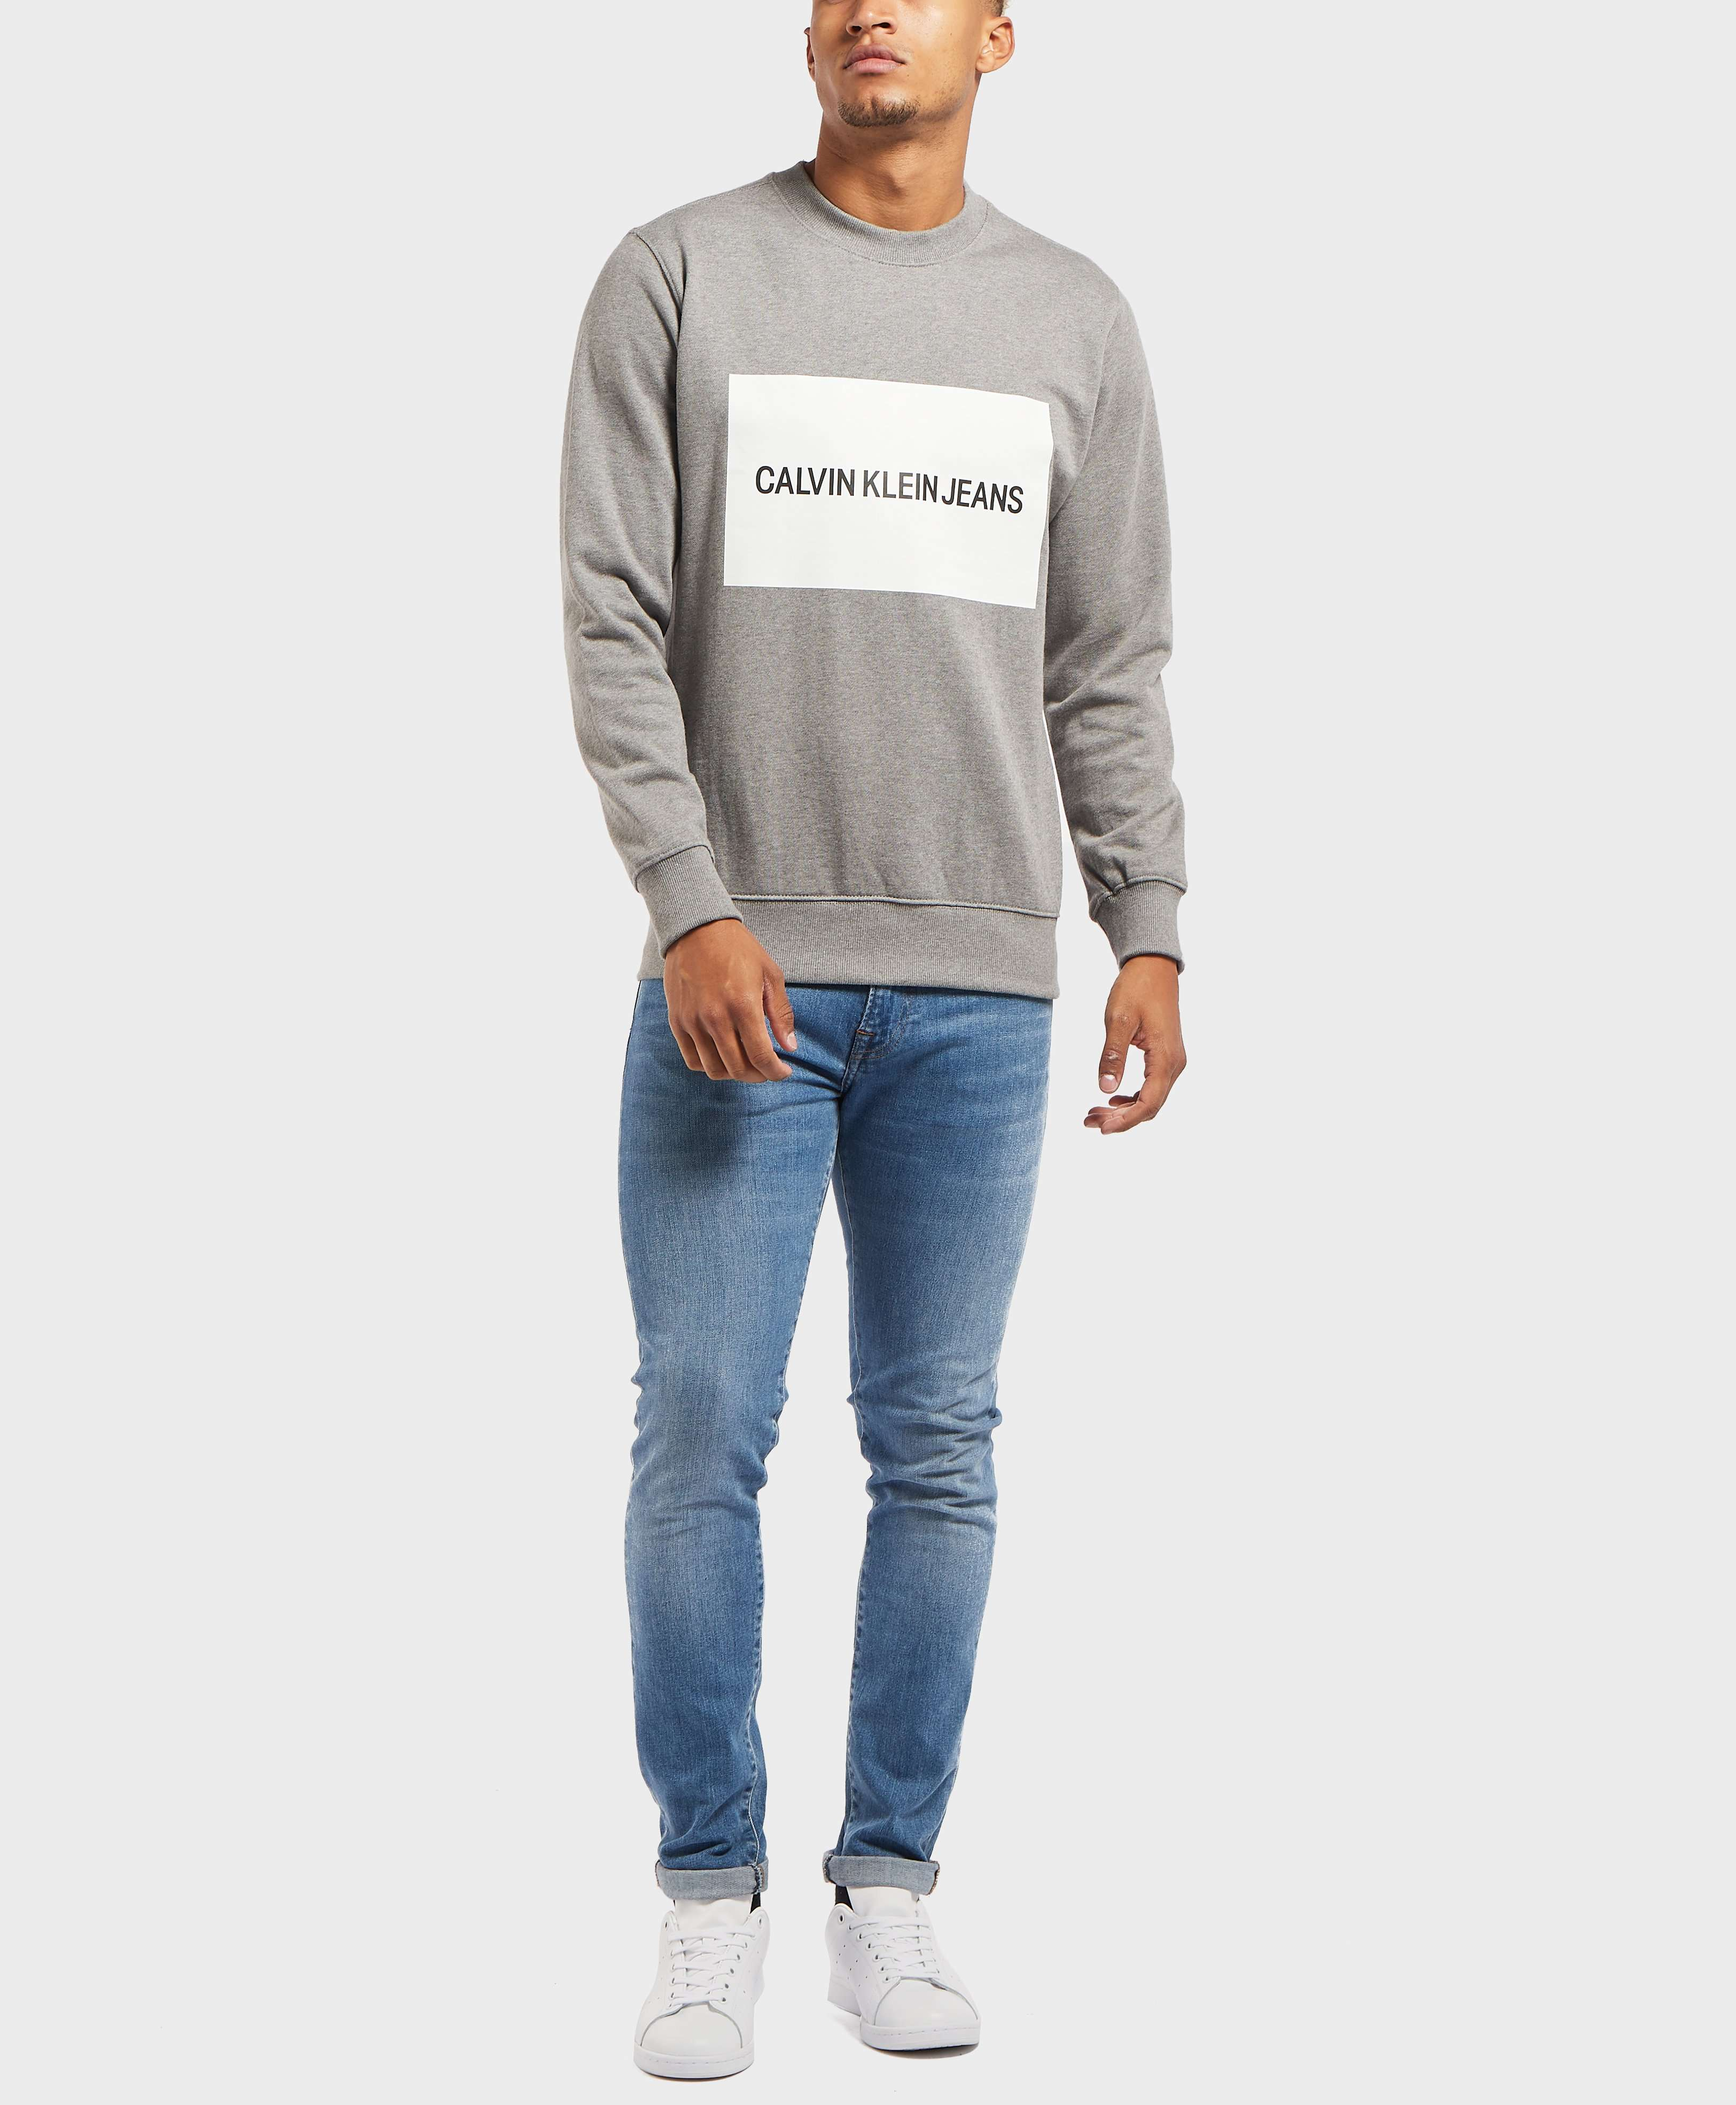 Calvin Klein Large Box Crew Sweatshirt